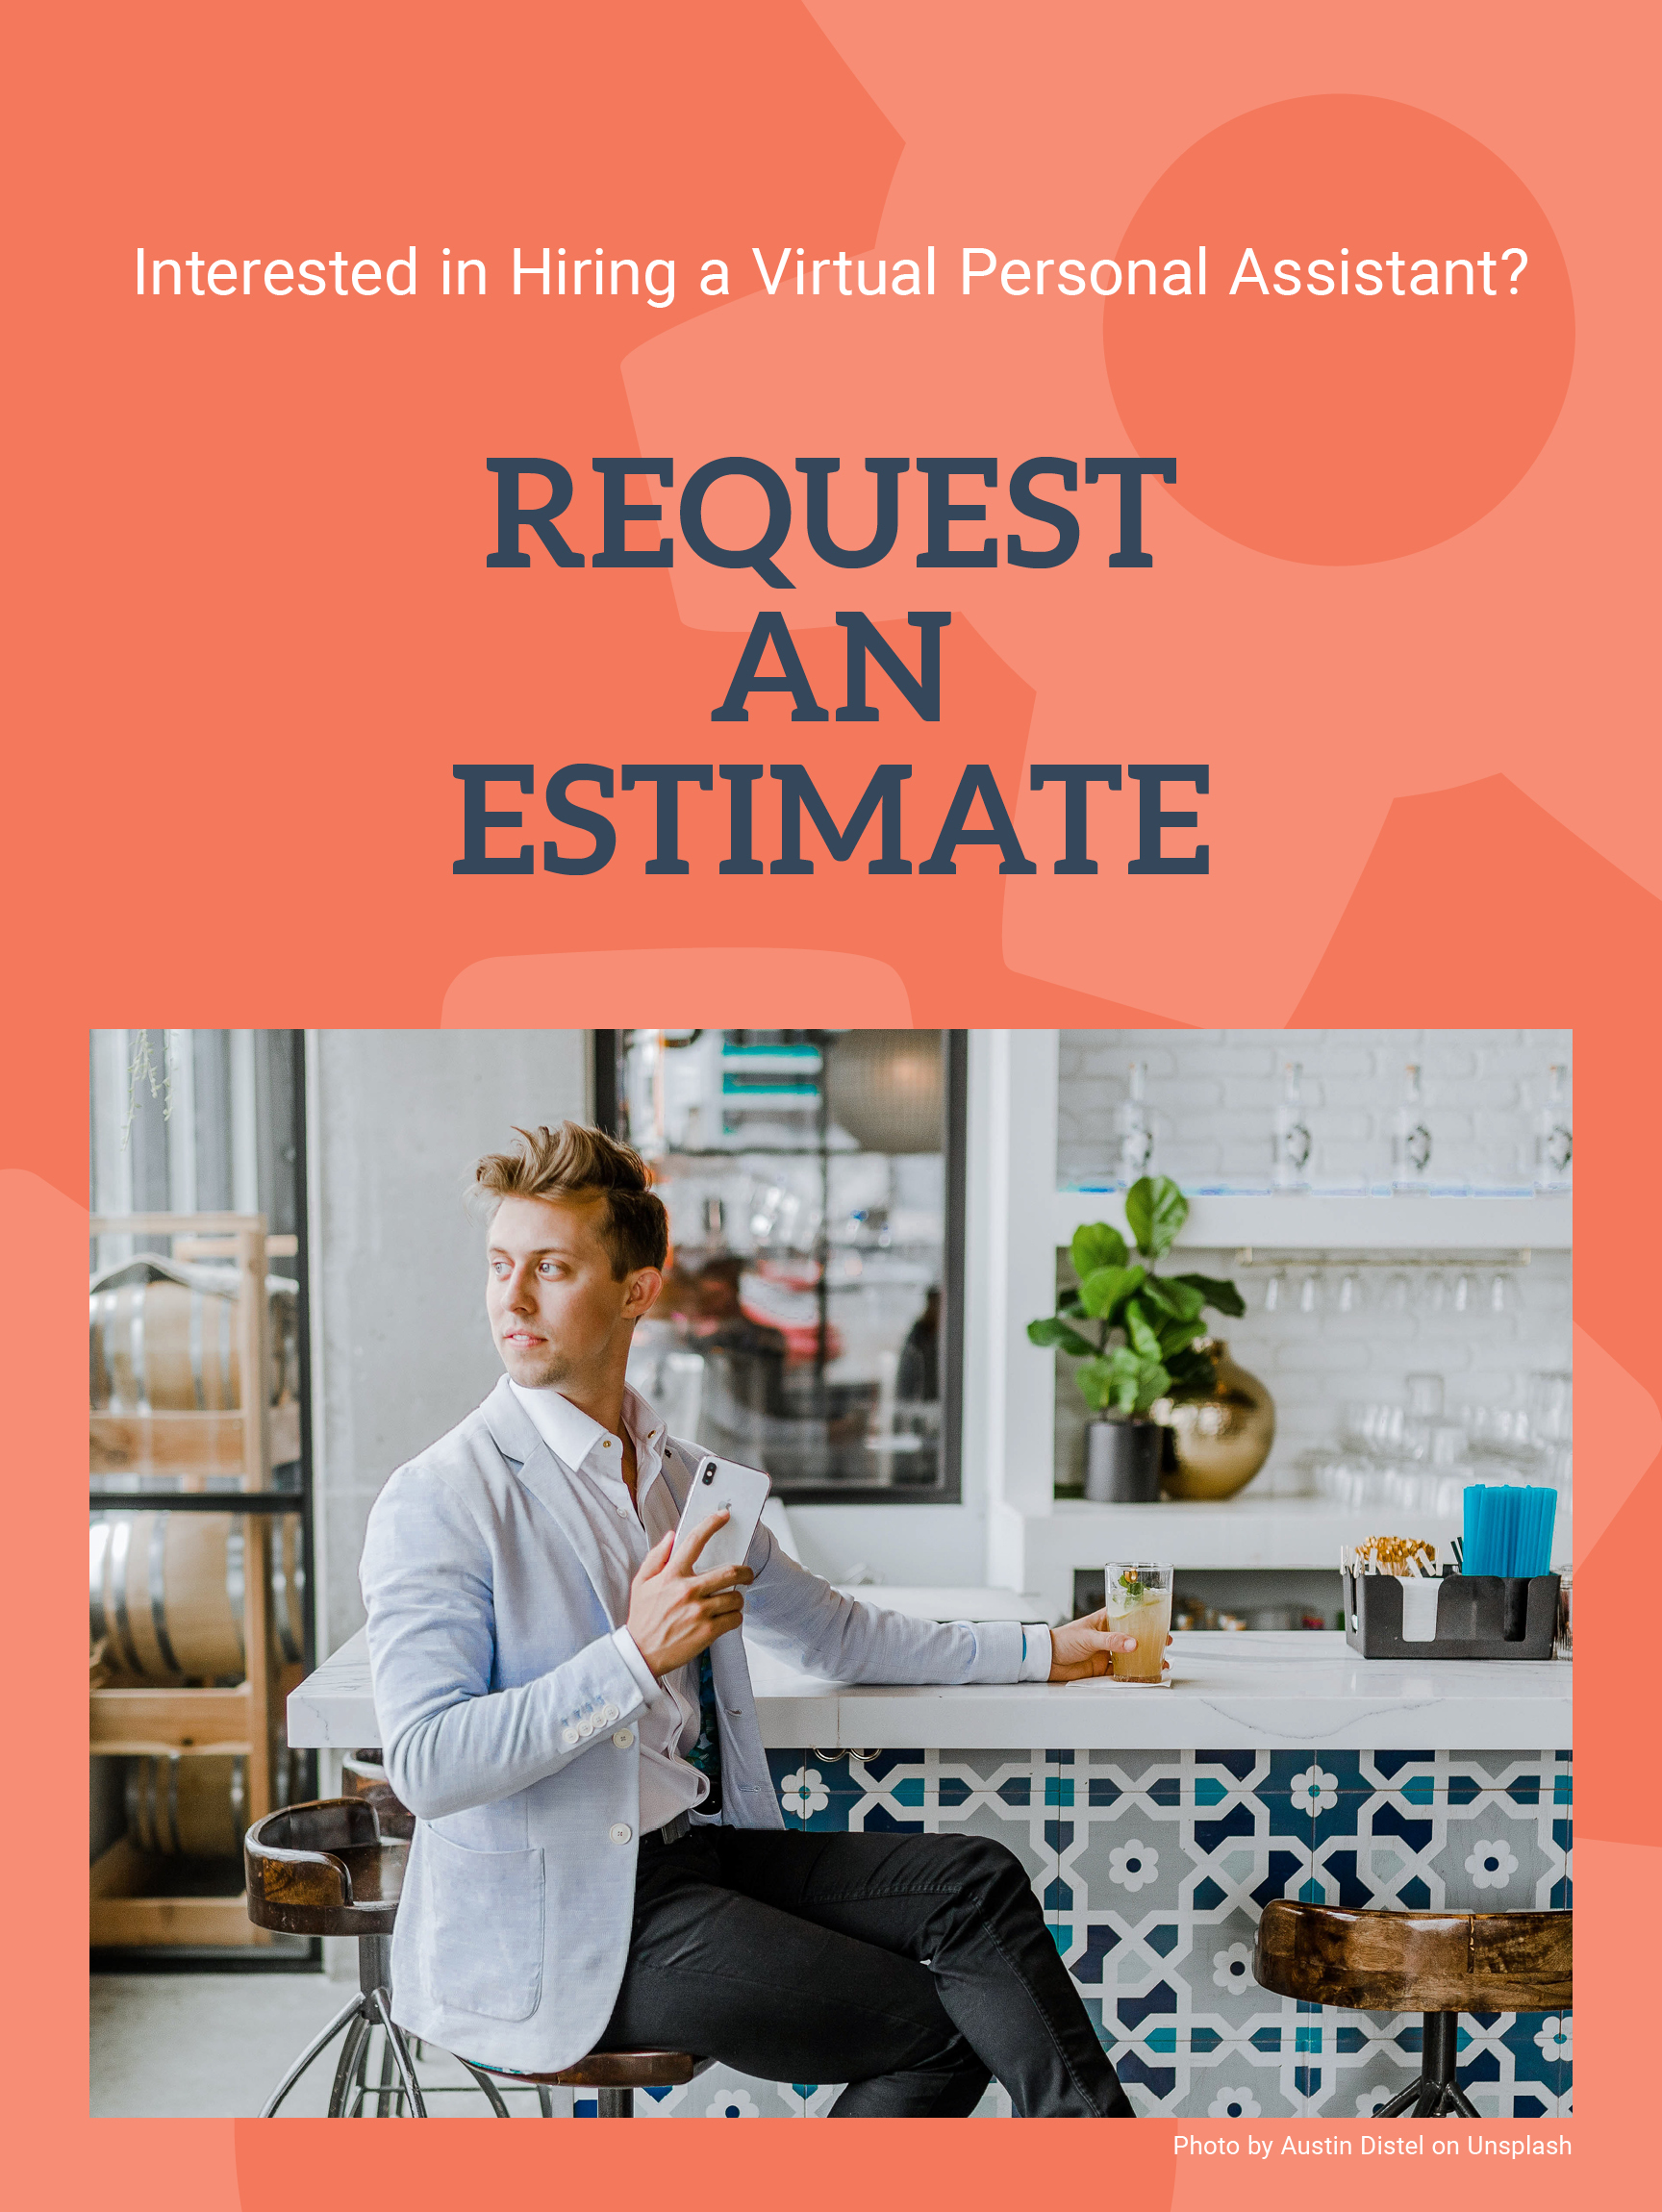 Request an Estimate for a Remote Personal Assistant